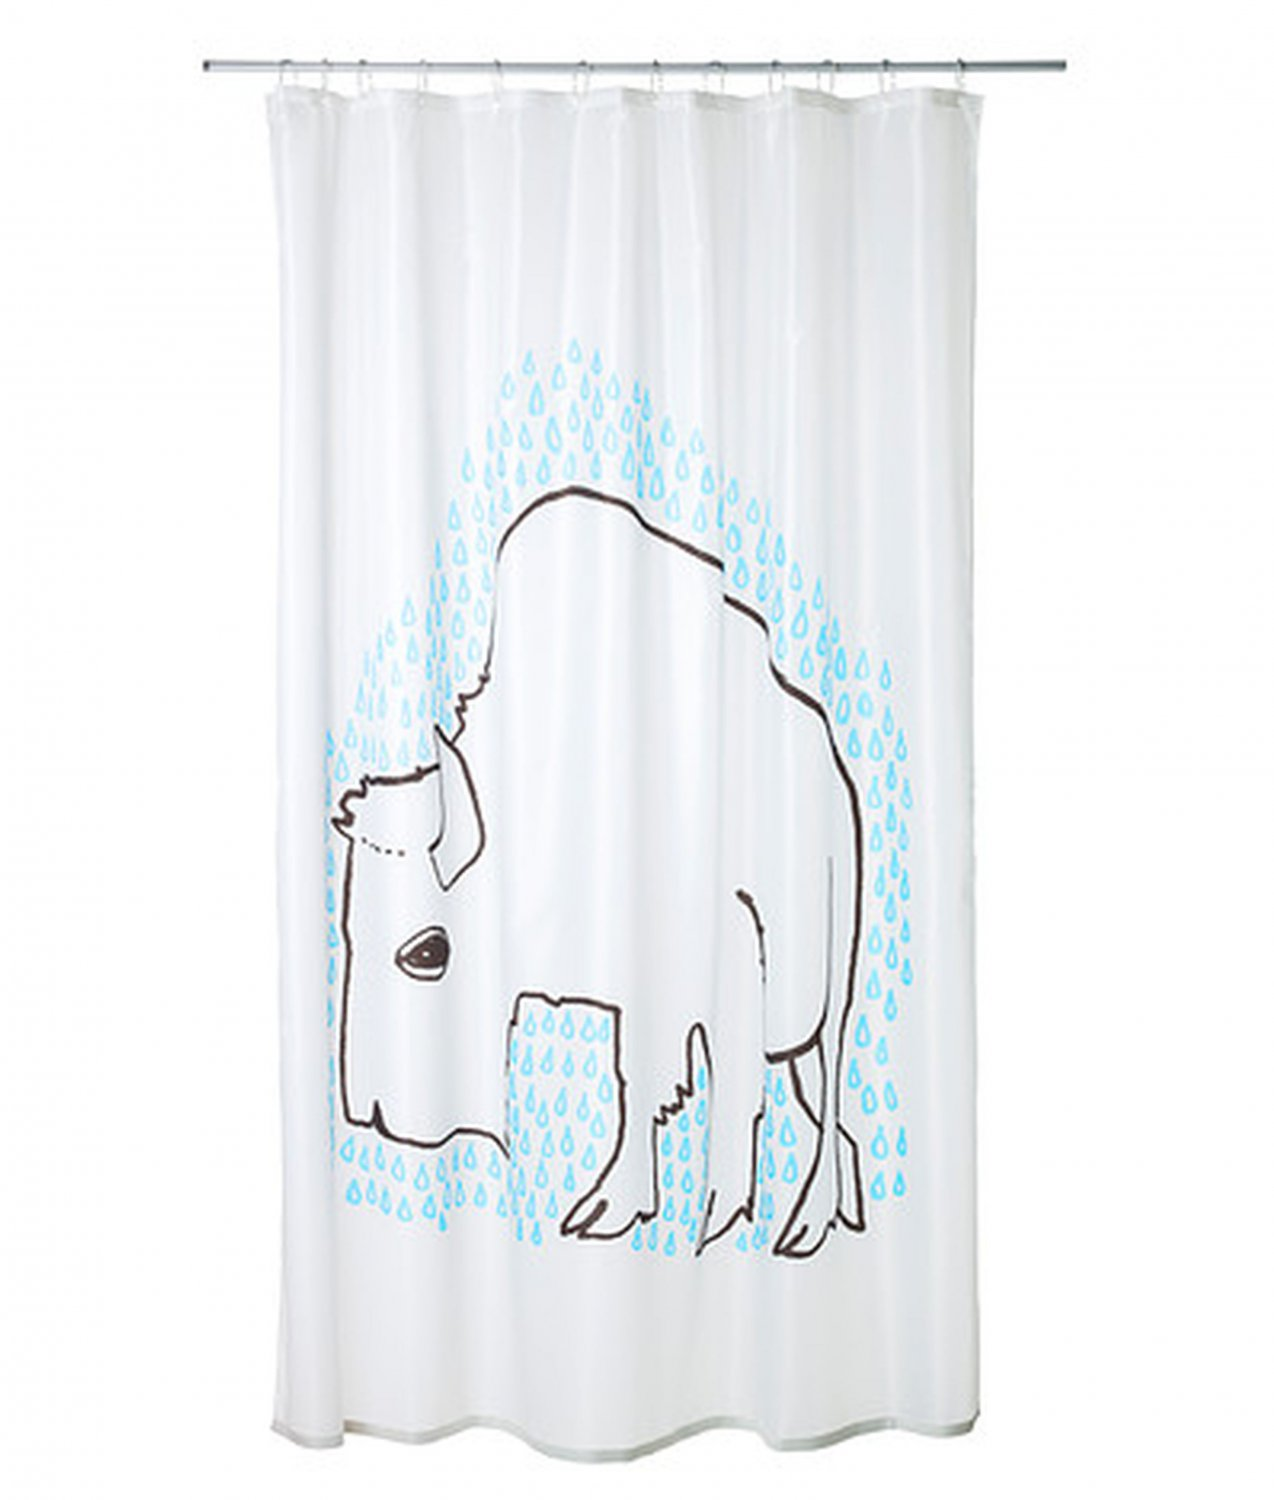 ikea tydingen fabric shower curtain blue white buffalo bison graphic. Black Bedroom Furniture Sets. Home Design Ideas